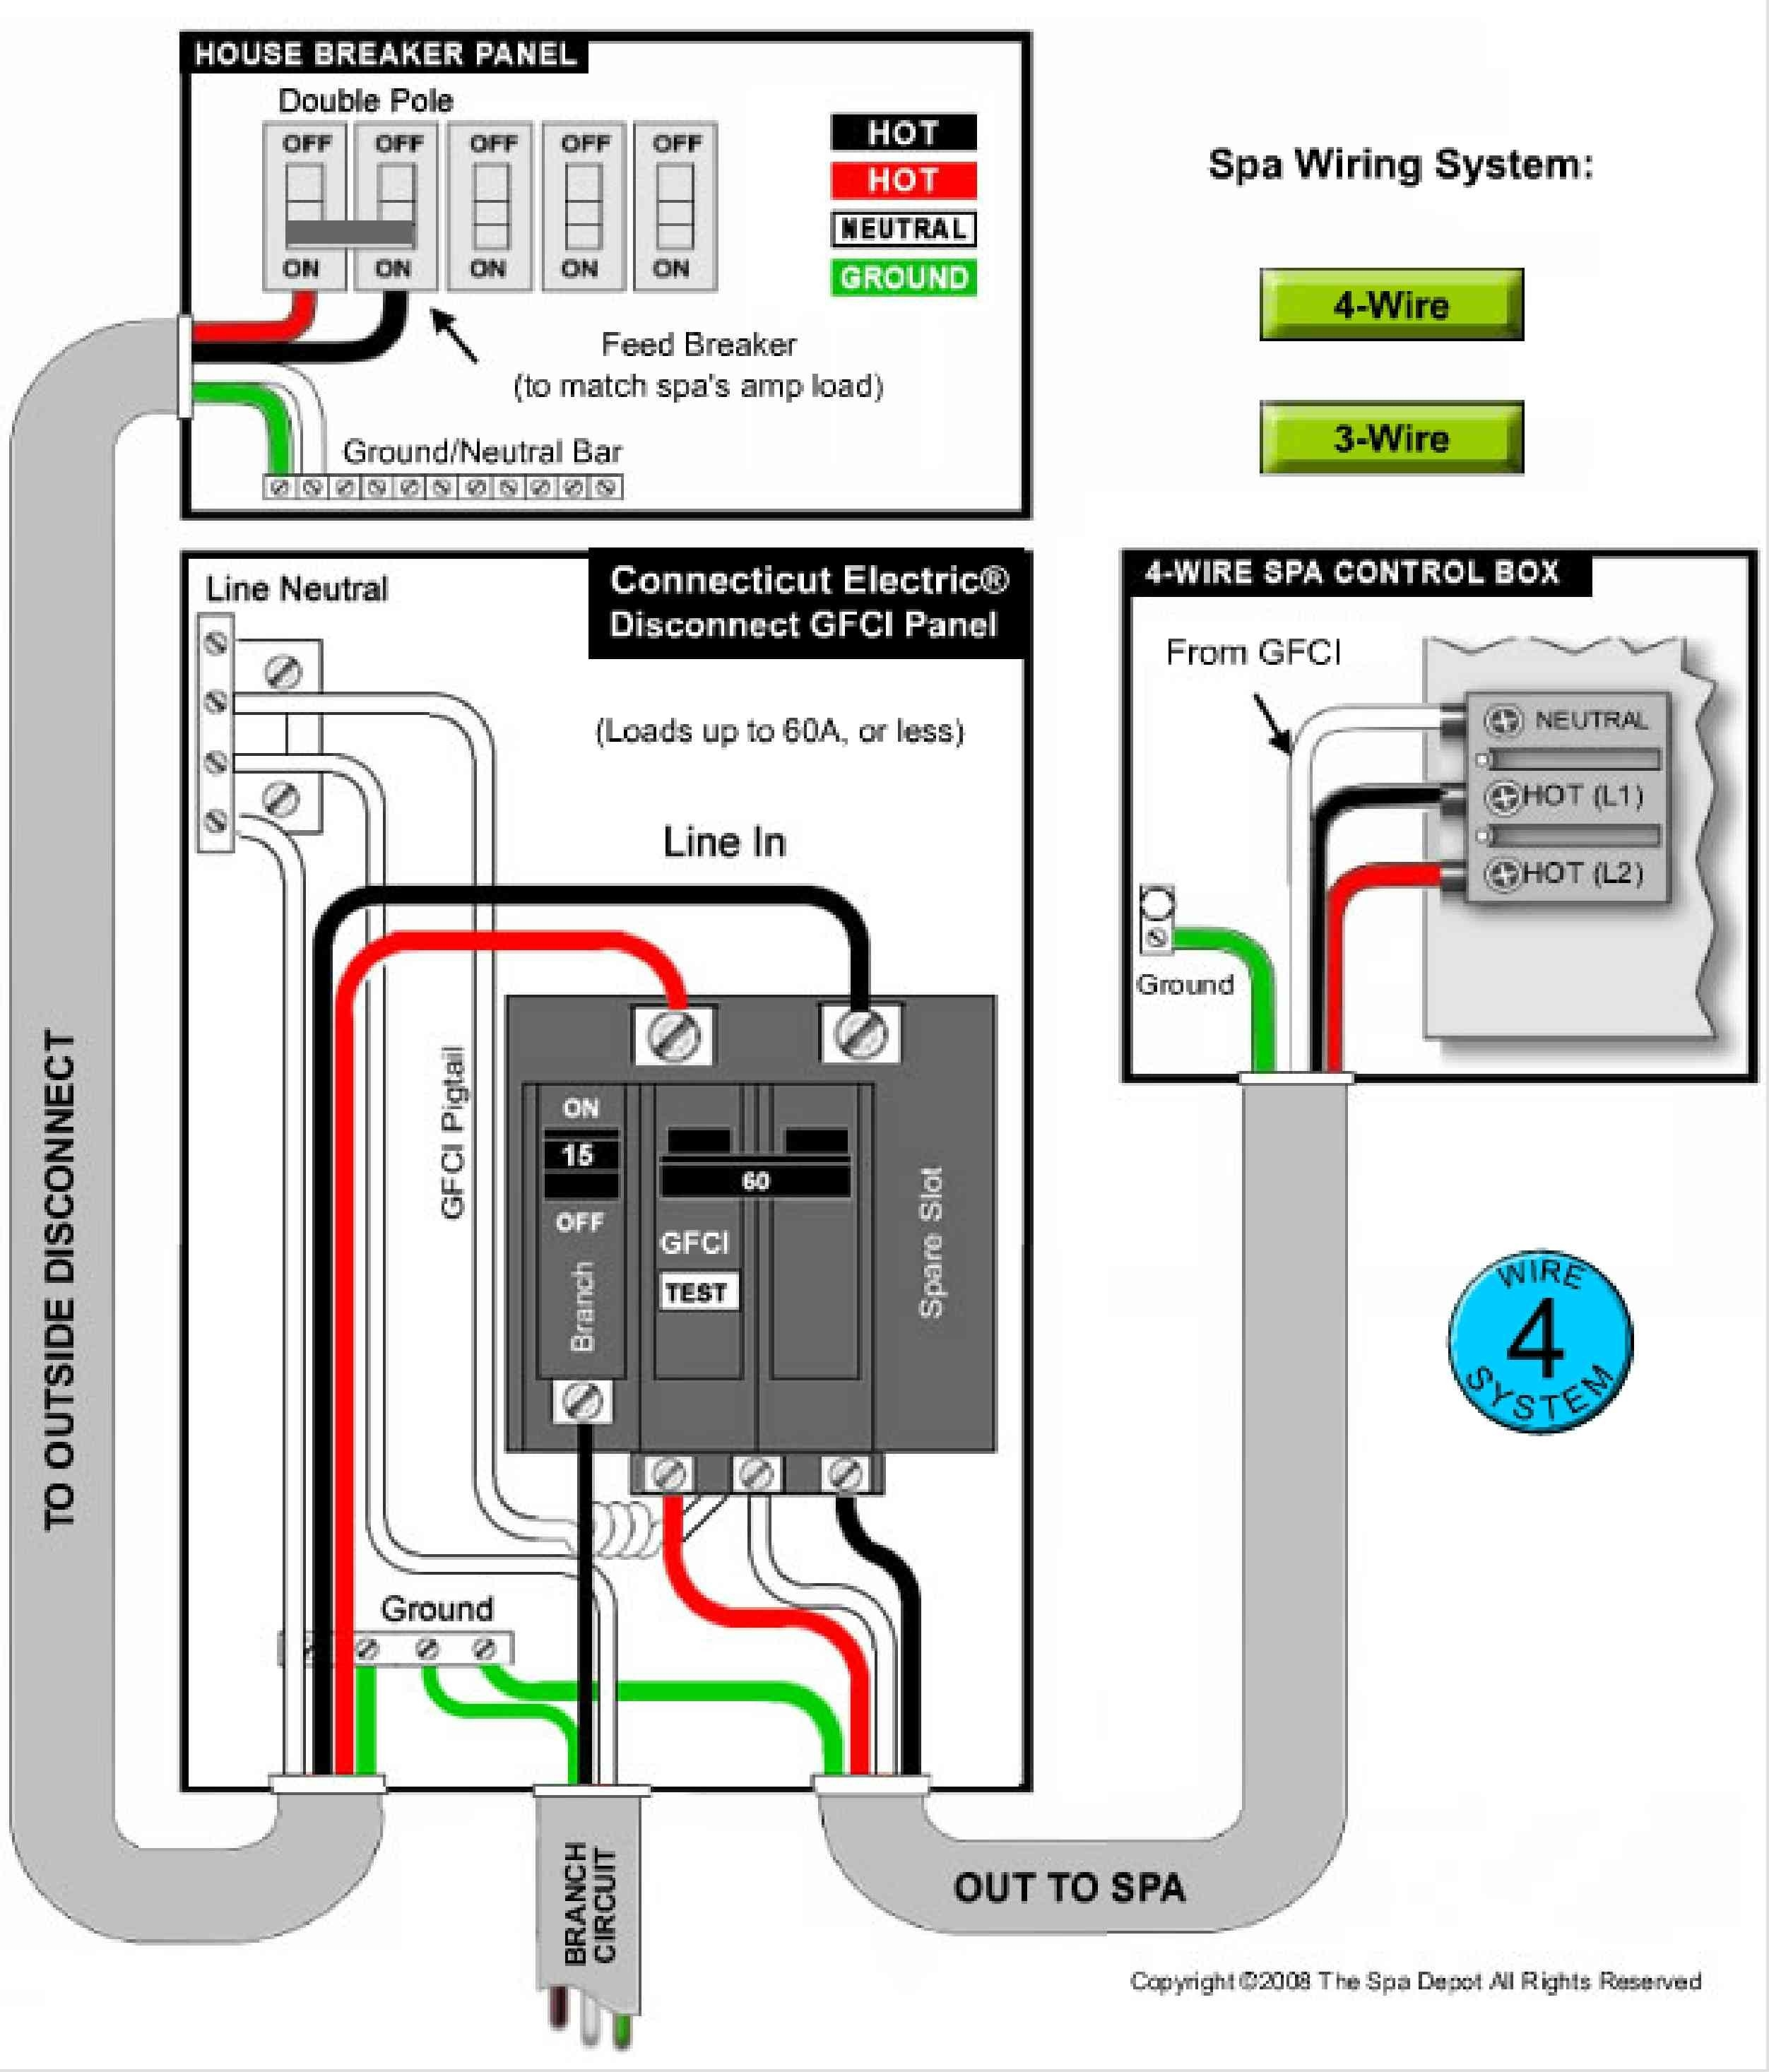 hot tub wiring diagram Collection-hot tub wiring diagram Collection Luxury Hot Tub Wiring Diagram 14 i DOWNLOAD Wiring Diagram Detail Name hot tub 20-t